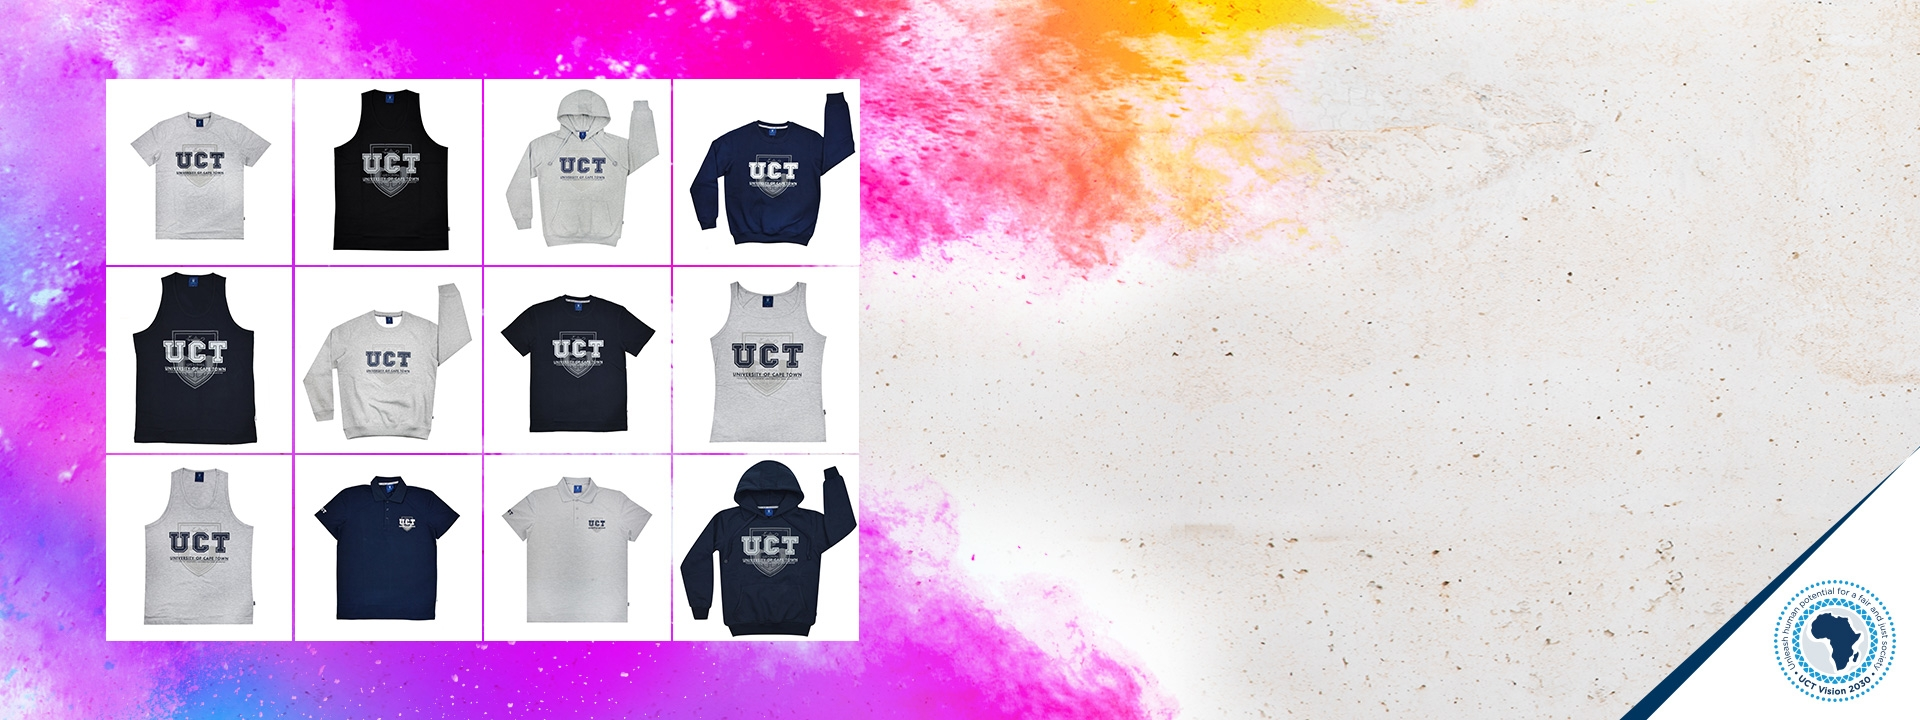 UCT's Official Merchandise is now on Takealot